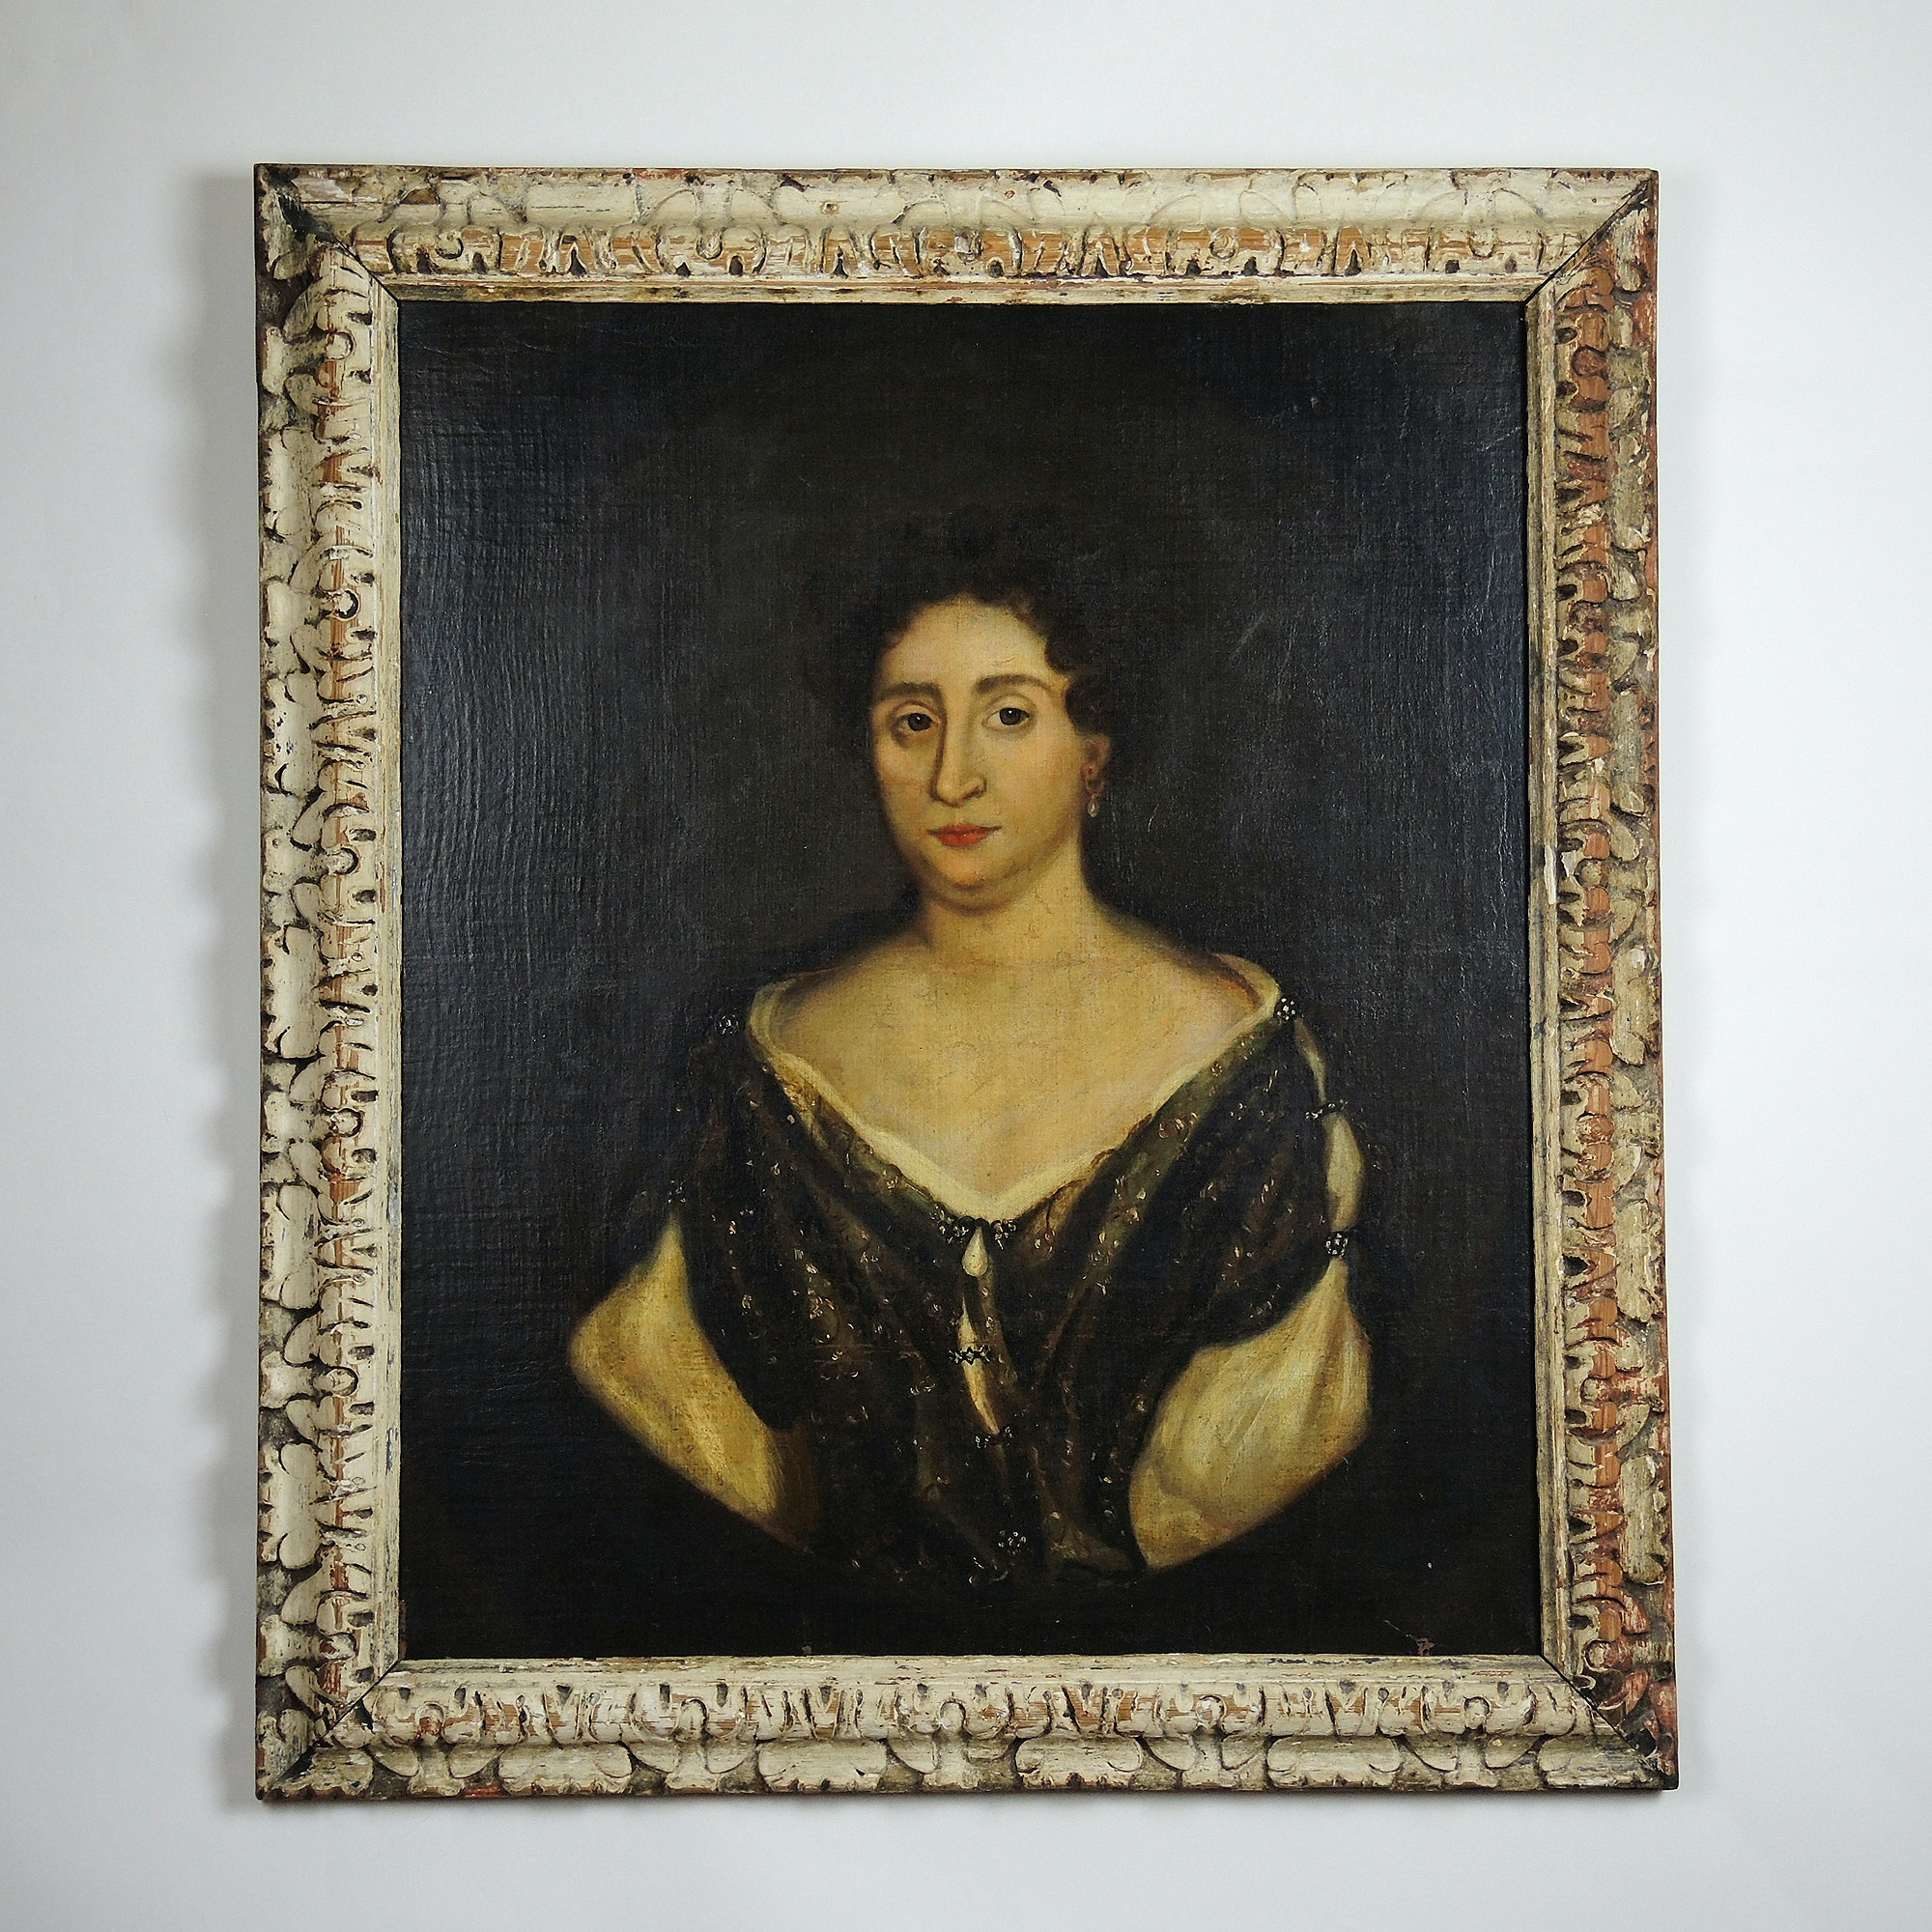 Early 19th Century Oil Painting on Linen Portrait of a Woman with Pearl Brooch